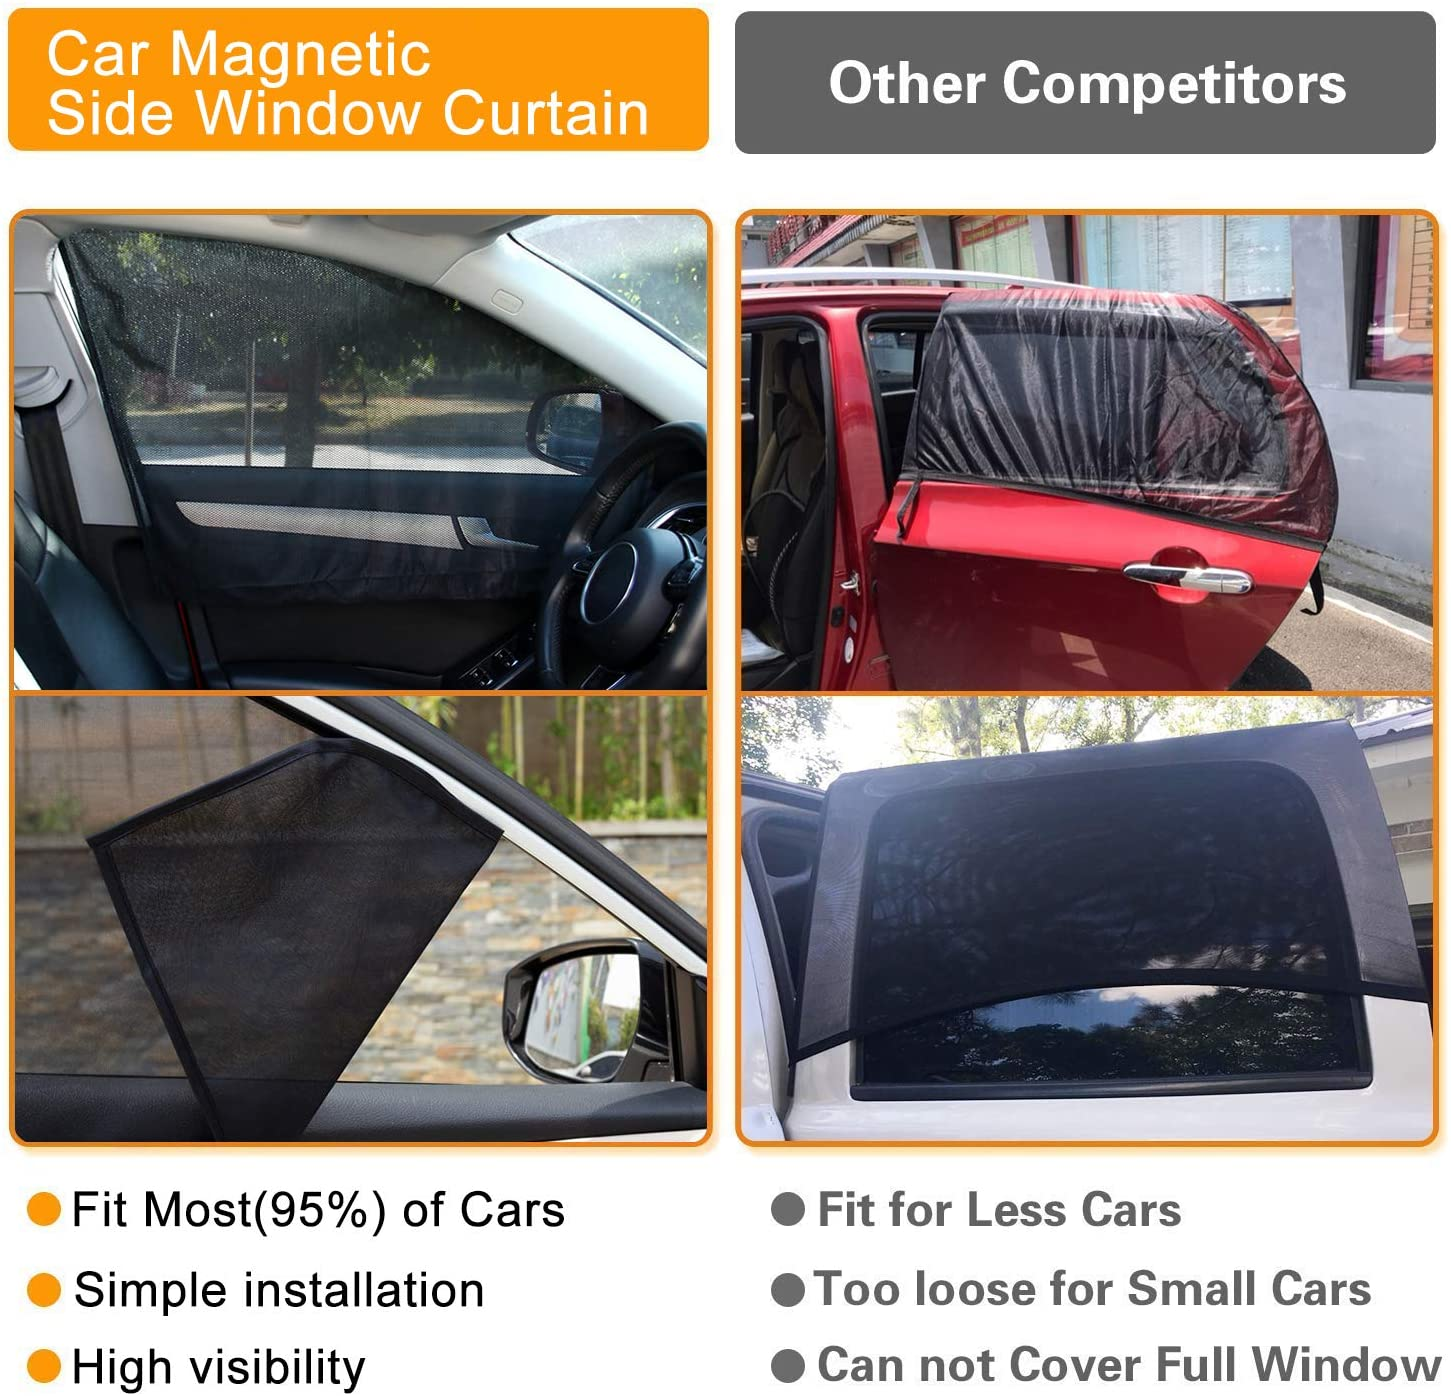 Heart Horse Car Window Shades Magnetic Side Window Summer Sun Curtain,Universal for Car Back and Front Visor Protector Sun Shade-Anti-UV Pack of 4